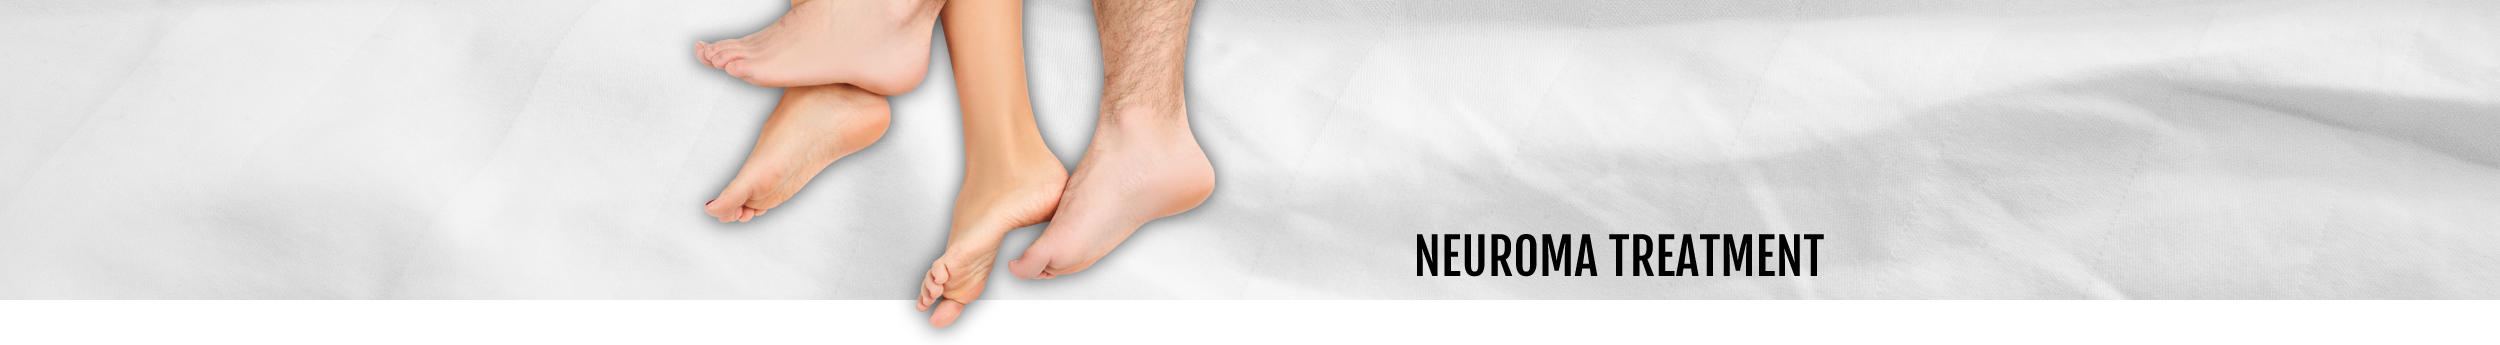 Neuroma treatment header for the Walk IN Foot Clinic in central London